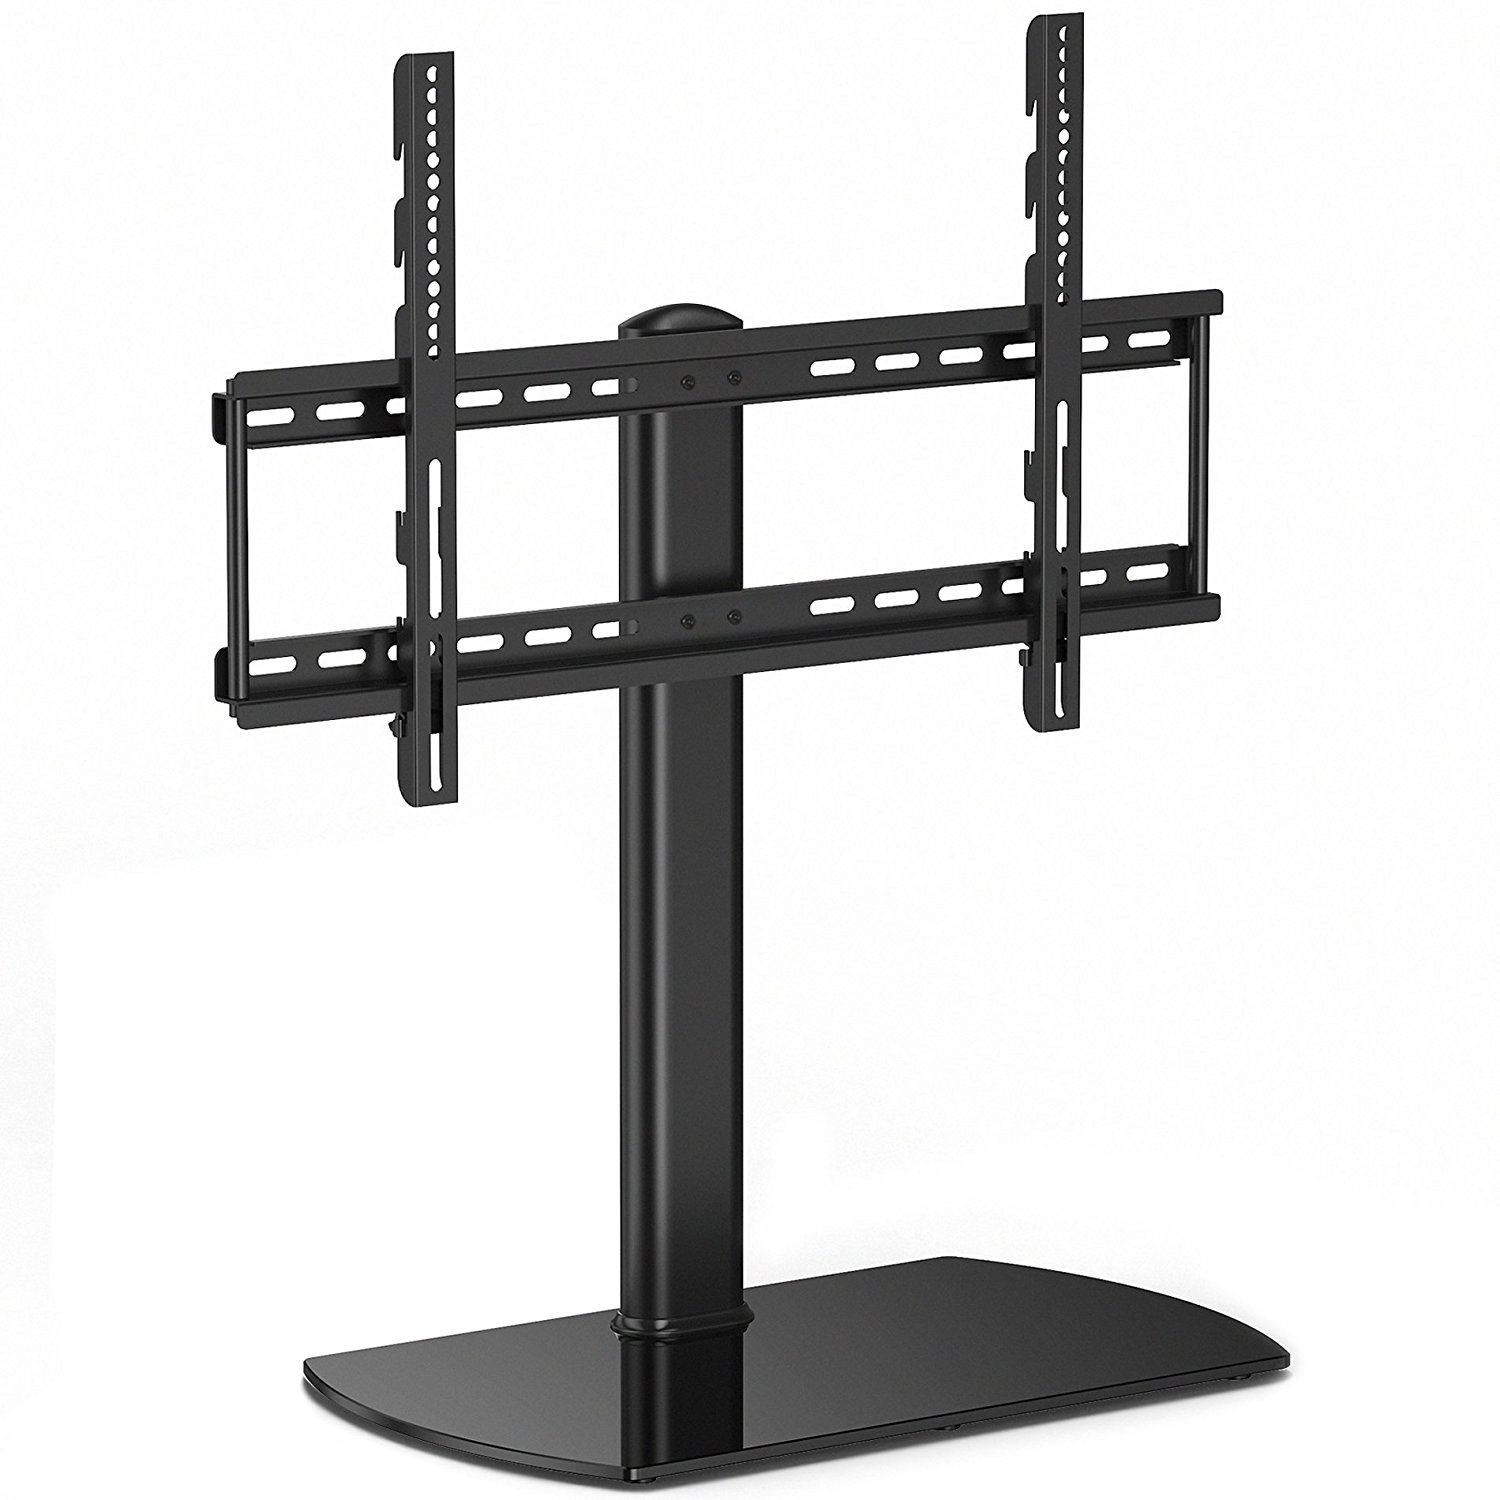 fitueyes universal tv stand base with wall mount for 27 32 34 40 54 60 inch